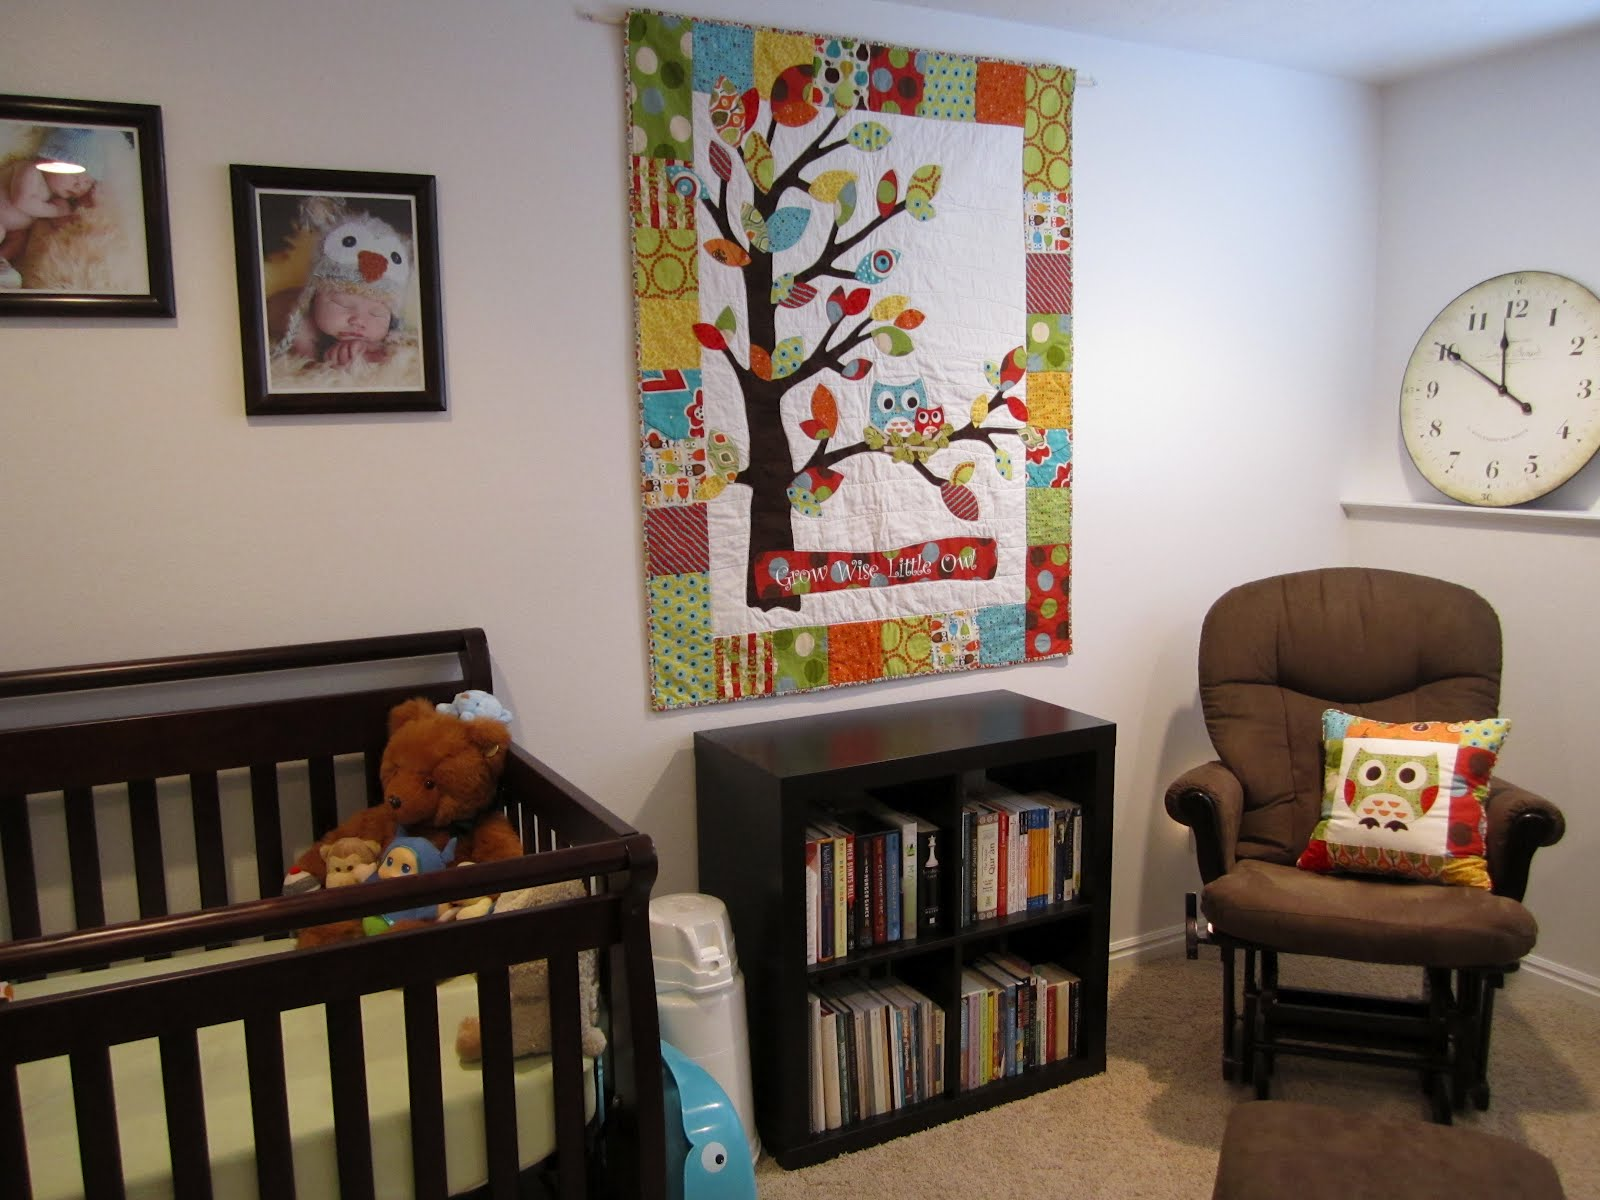 How To Hang A Quilt On The Wall hang a quilt on the wall - best quilt 2017